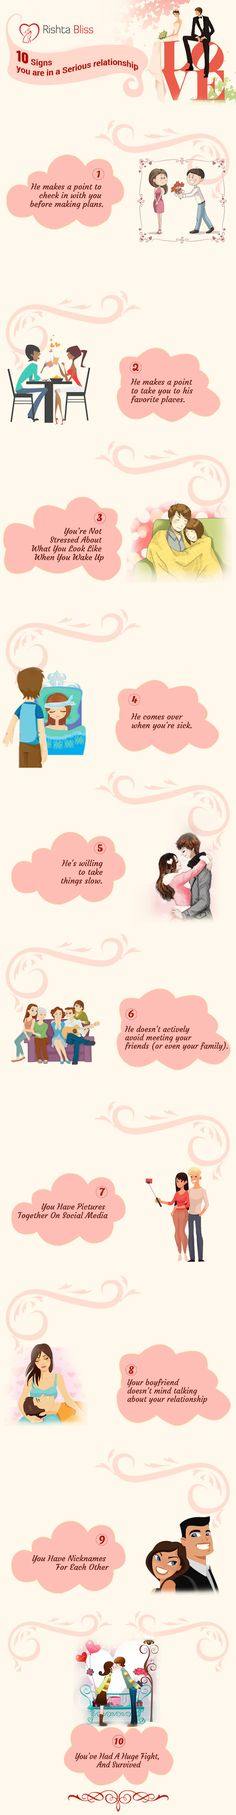 Infographic: 10 Signs You Are In A Serious Relationship - DesignTAXI.com